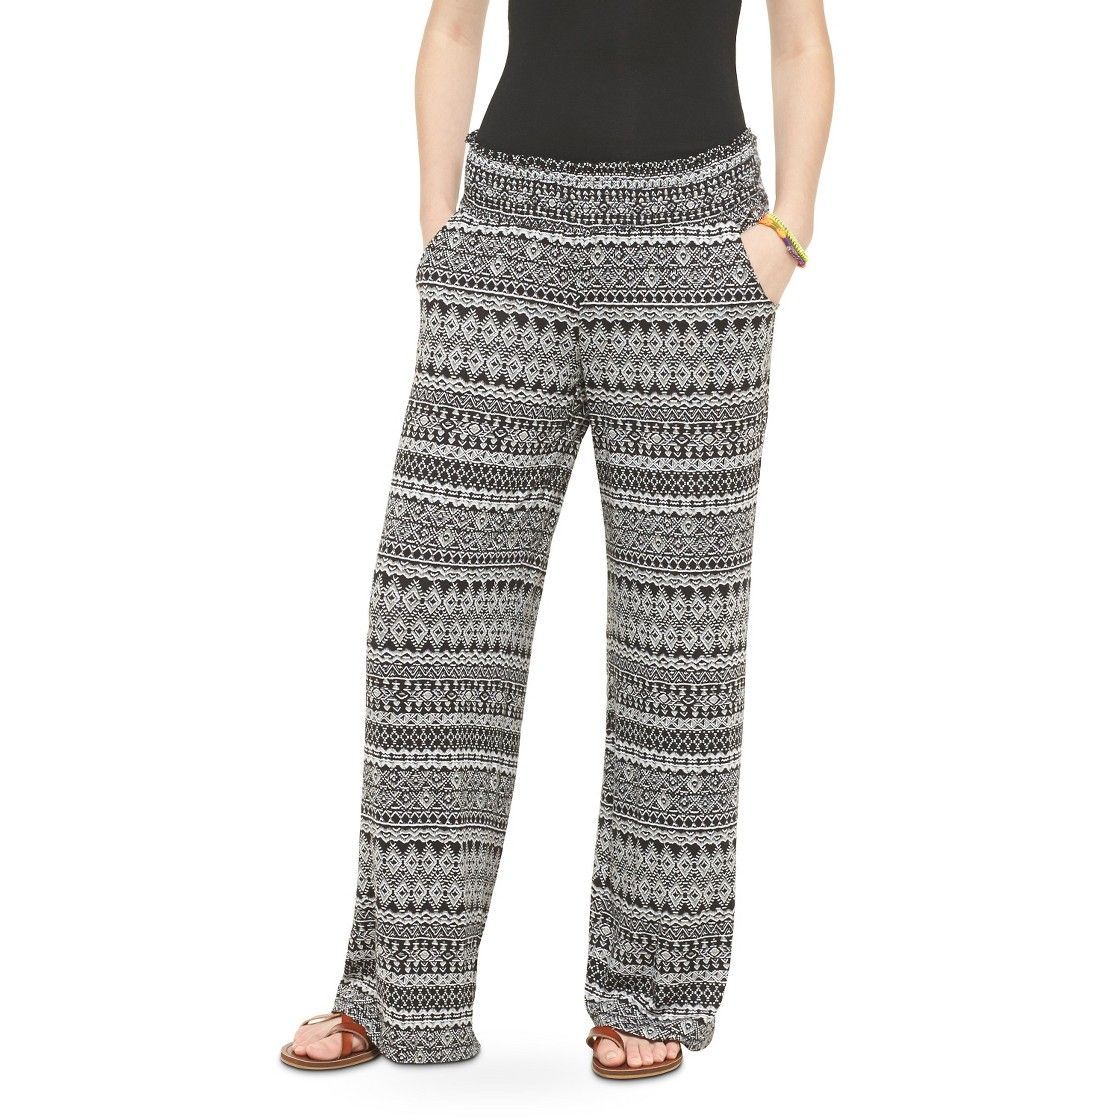 cecfc9d830b808 Soft Knit Palazzo Pant - Mossimo Supply Co. target | For the ❤ of ...